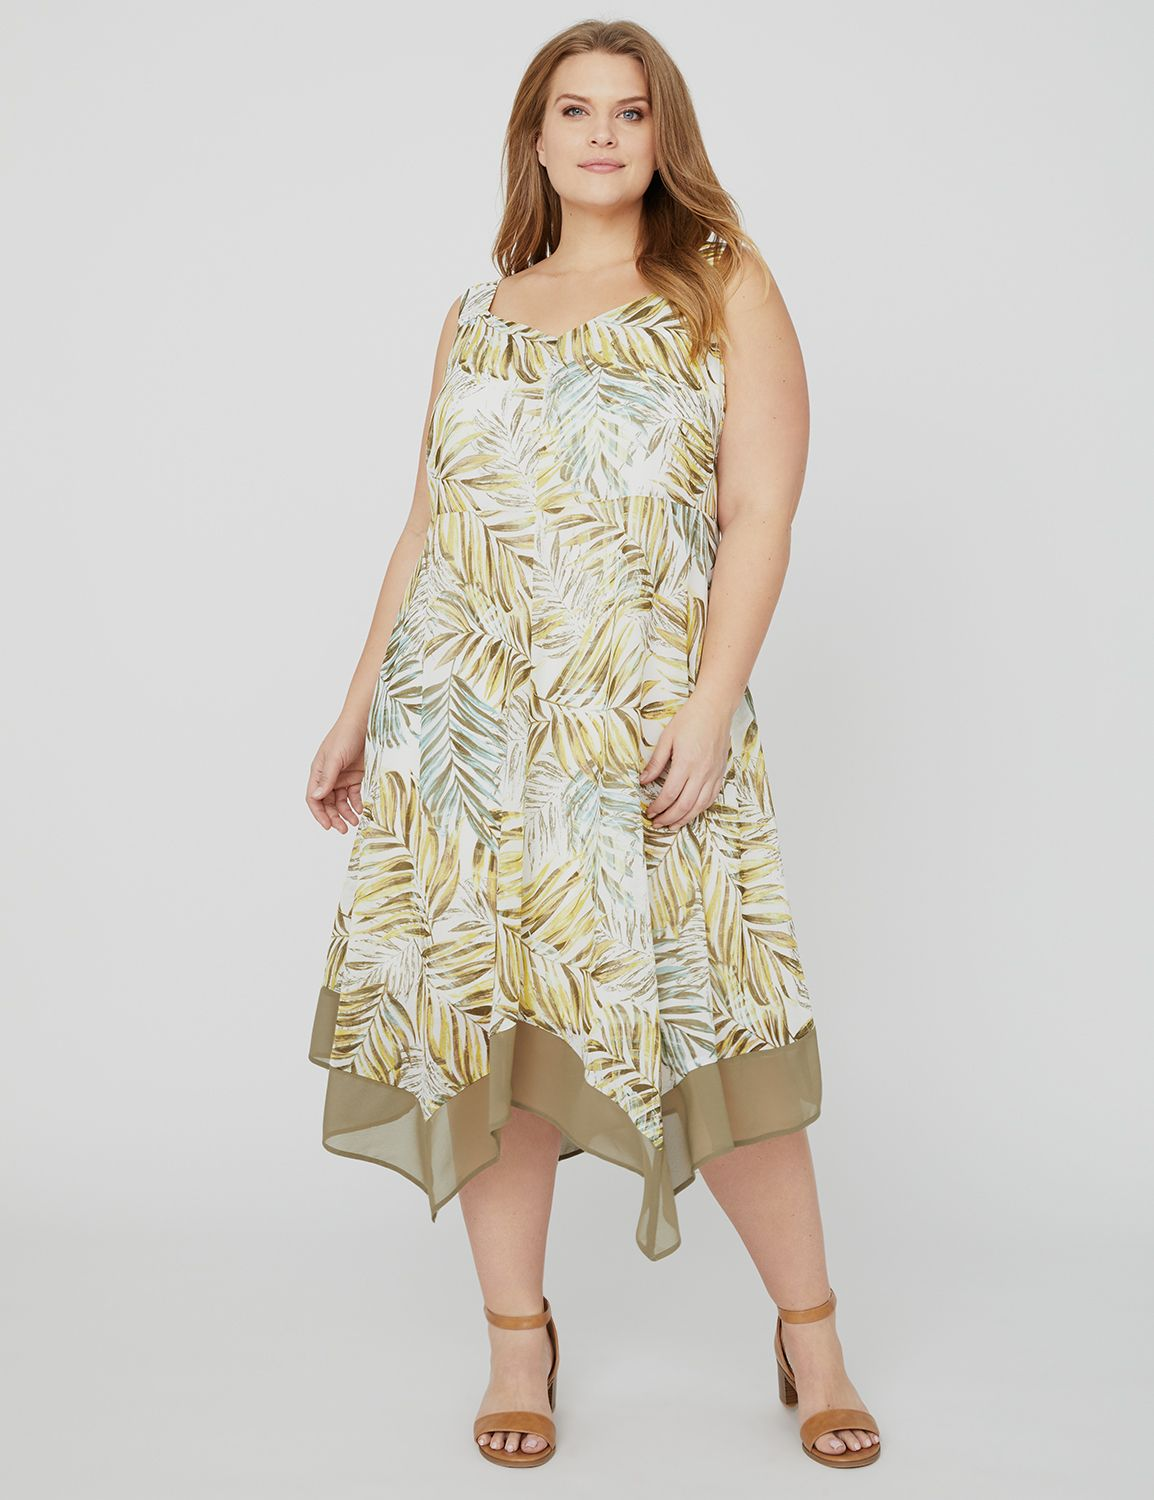 Greenwood Imprint Dress with Hankerchief Hem 1089938 Printed HANKY HEM DRESS wit MP-300102379